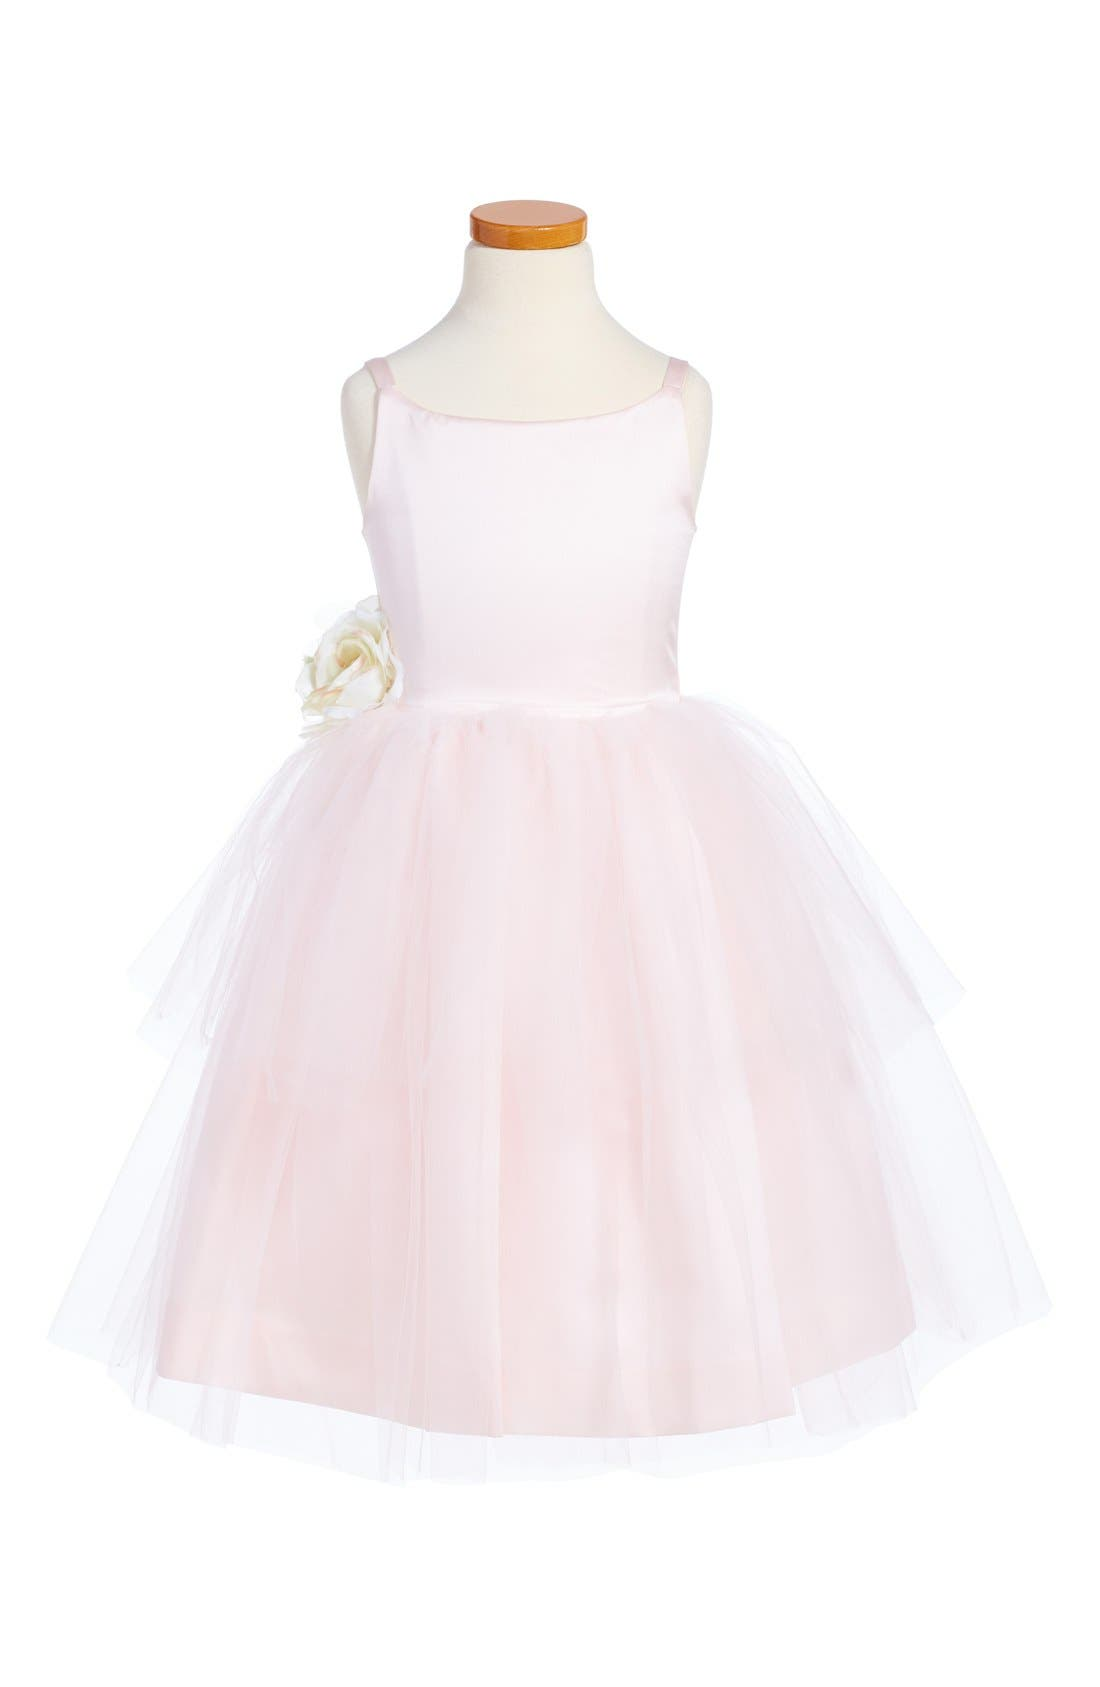 Tulle Ballerina Dress,                             Main thumbnail 1, color,